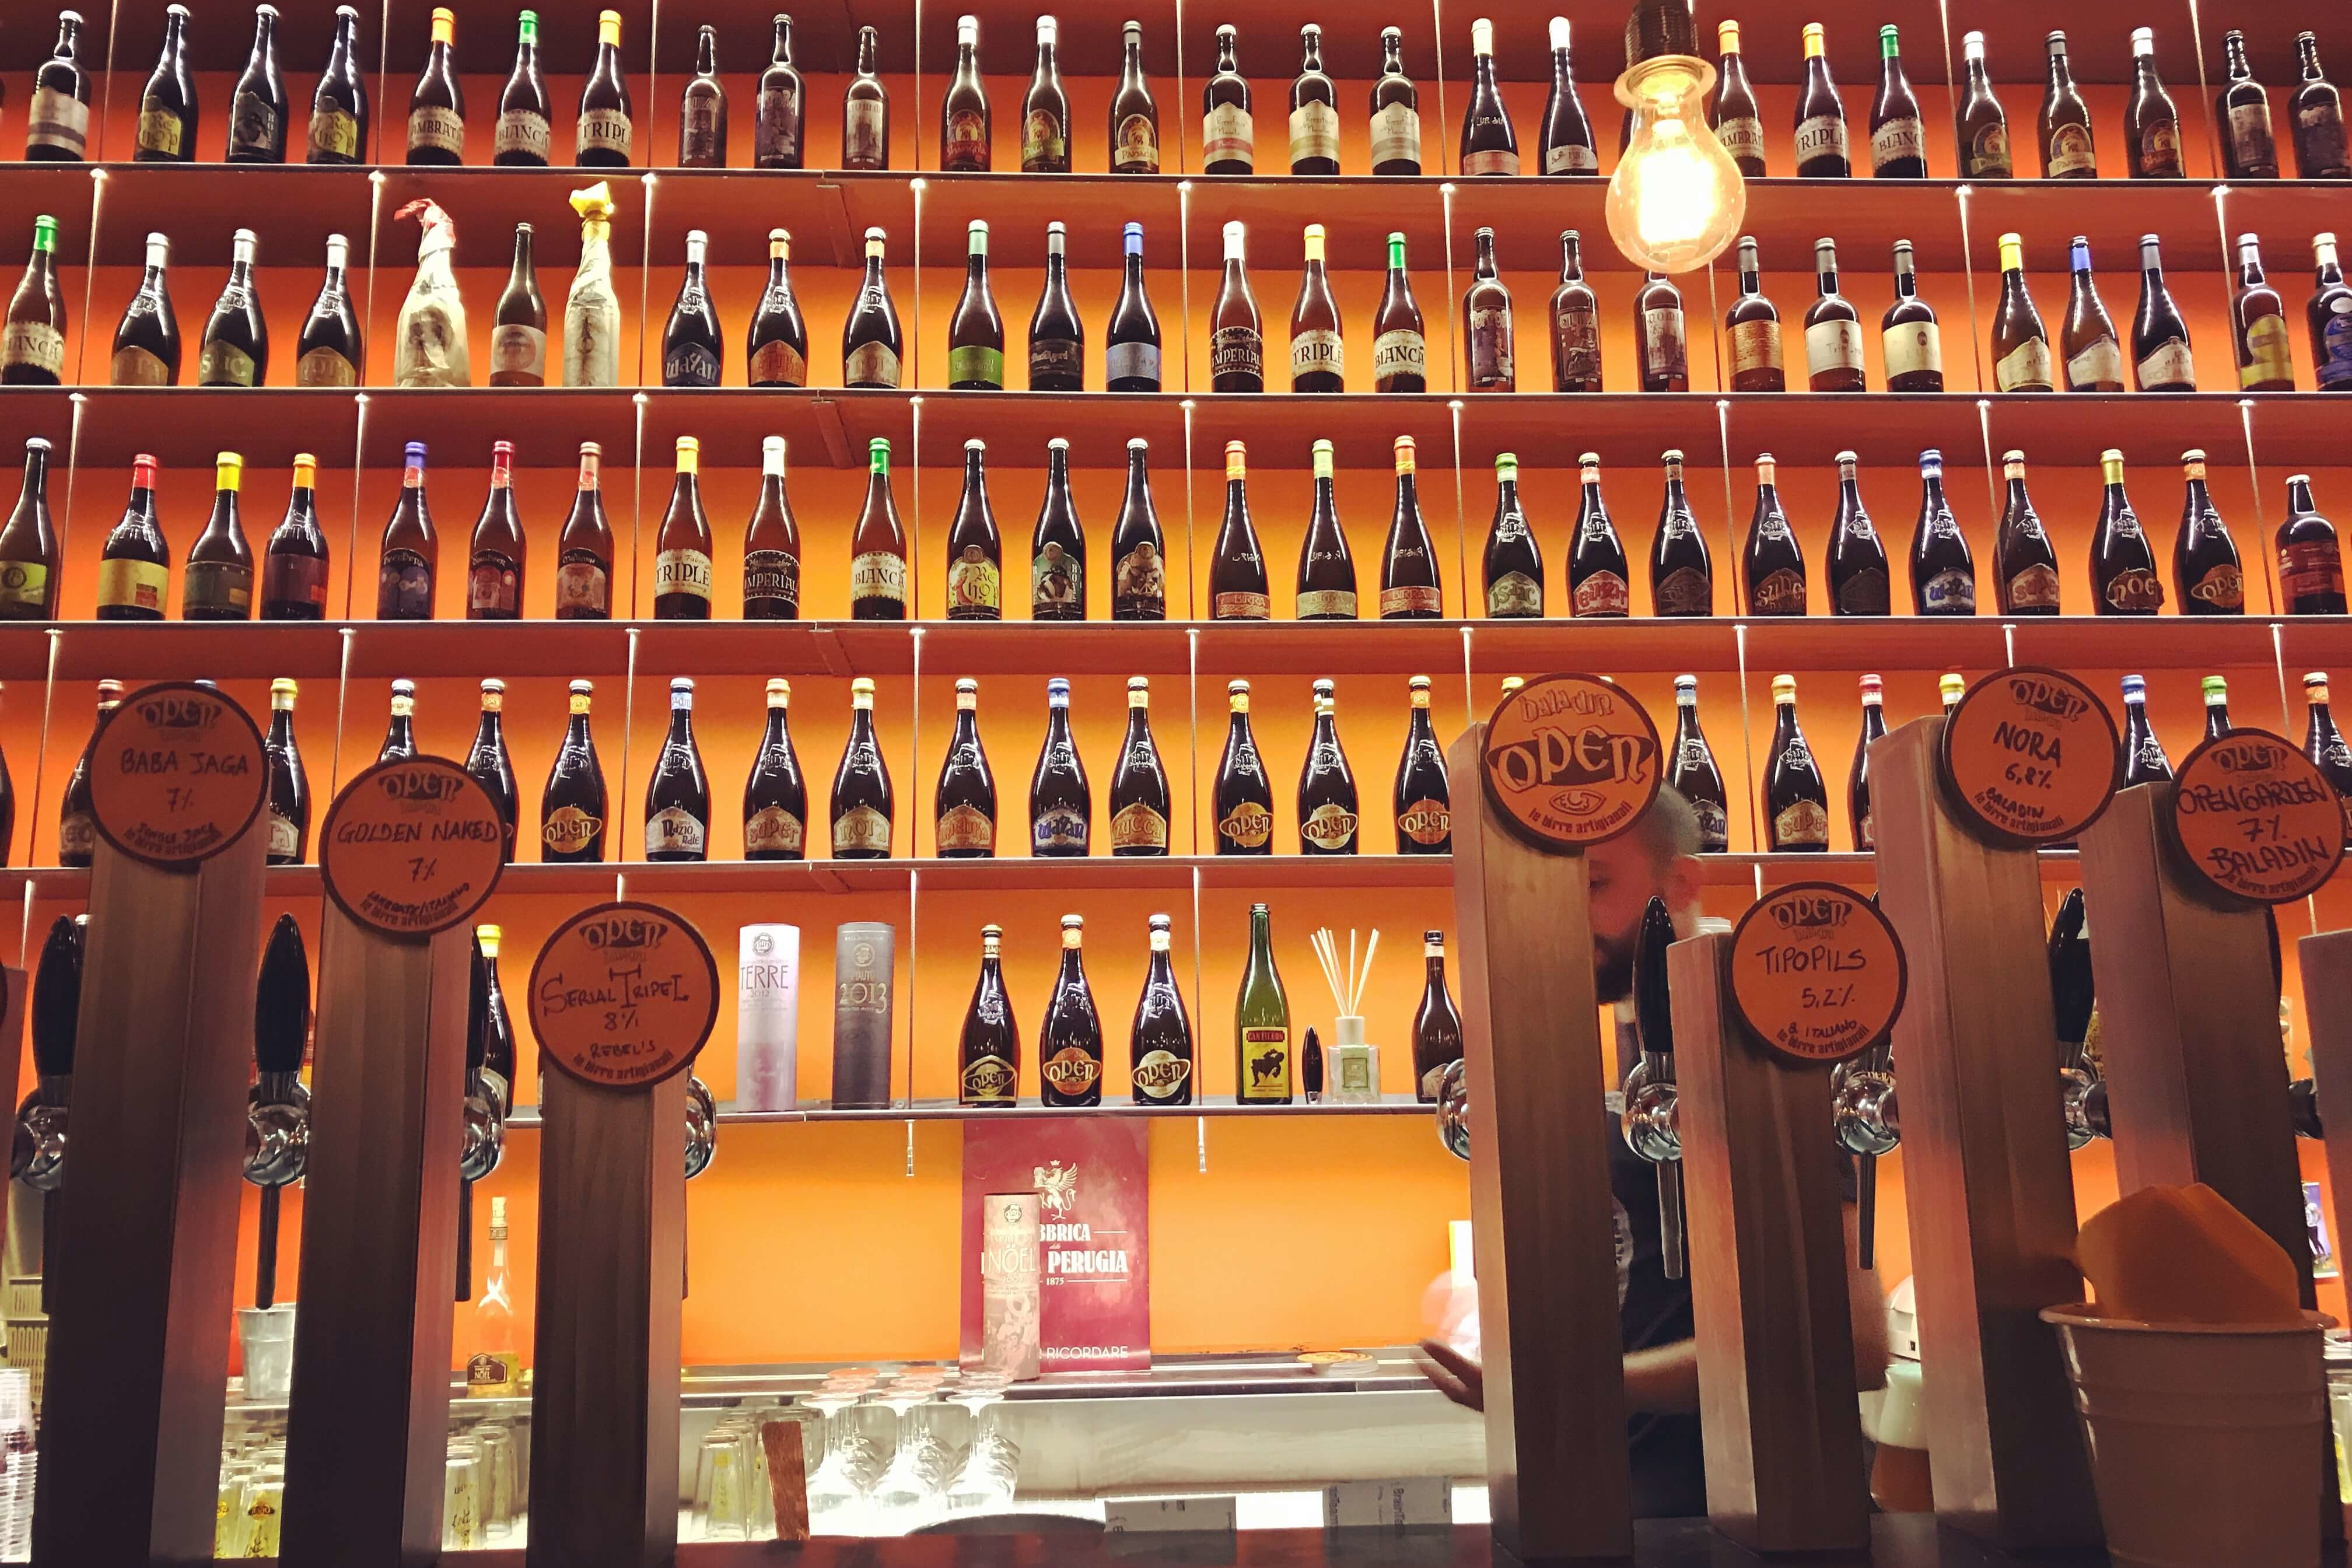 Bottle wall at Open Baladin in Rome